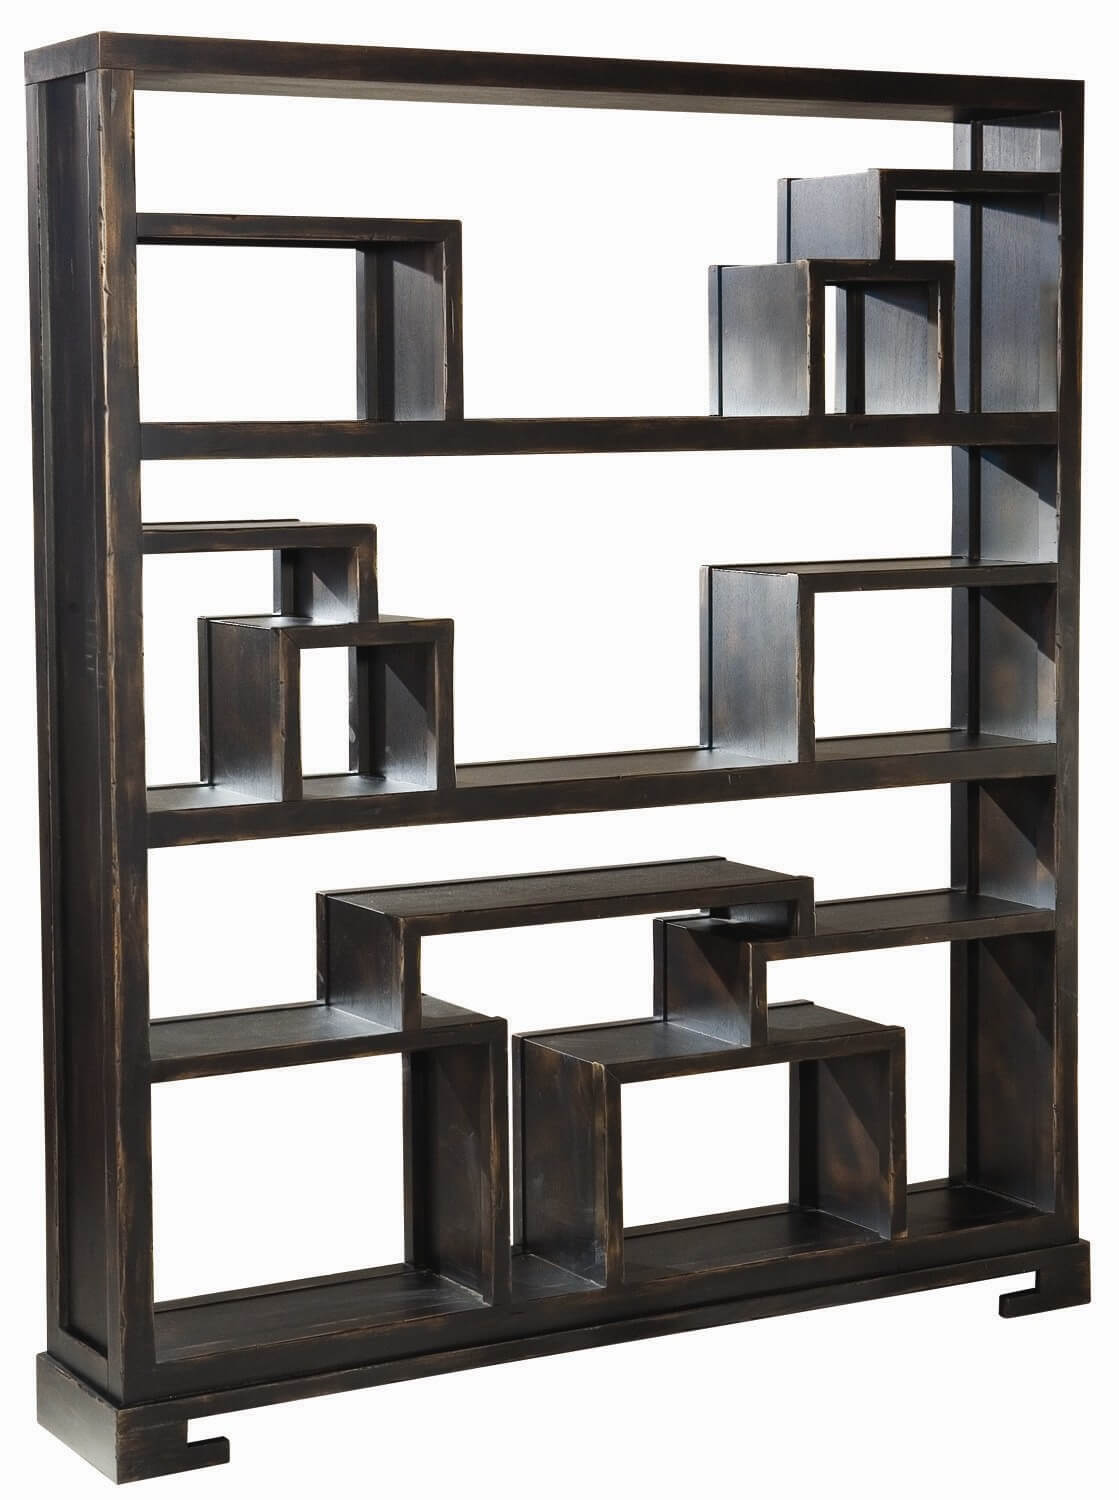 Cube Bookshelf 17 Types Of Cube Shelves Bookcases And Storage Options